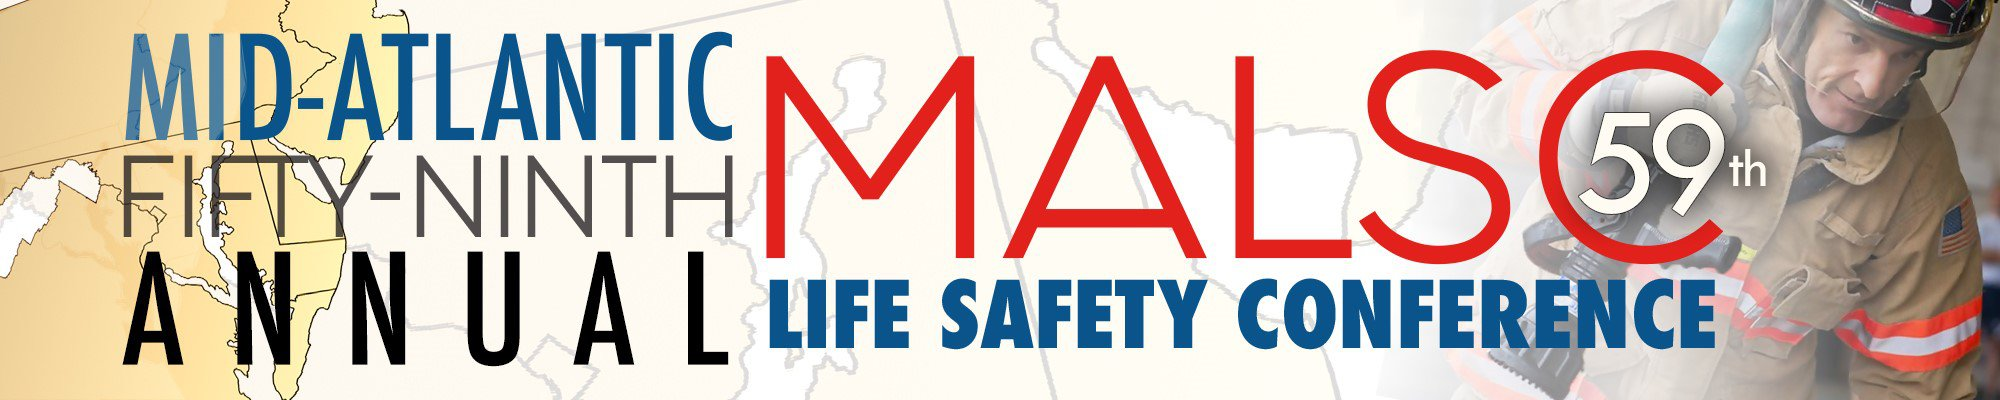 Mid-Atlantic Life Safety Conference